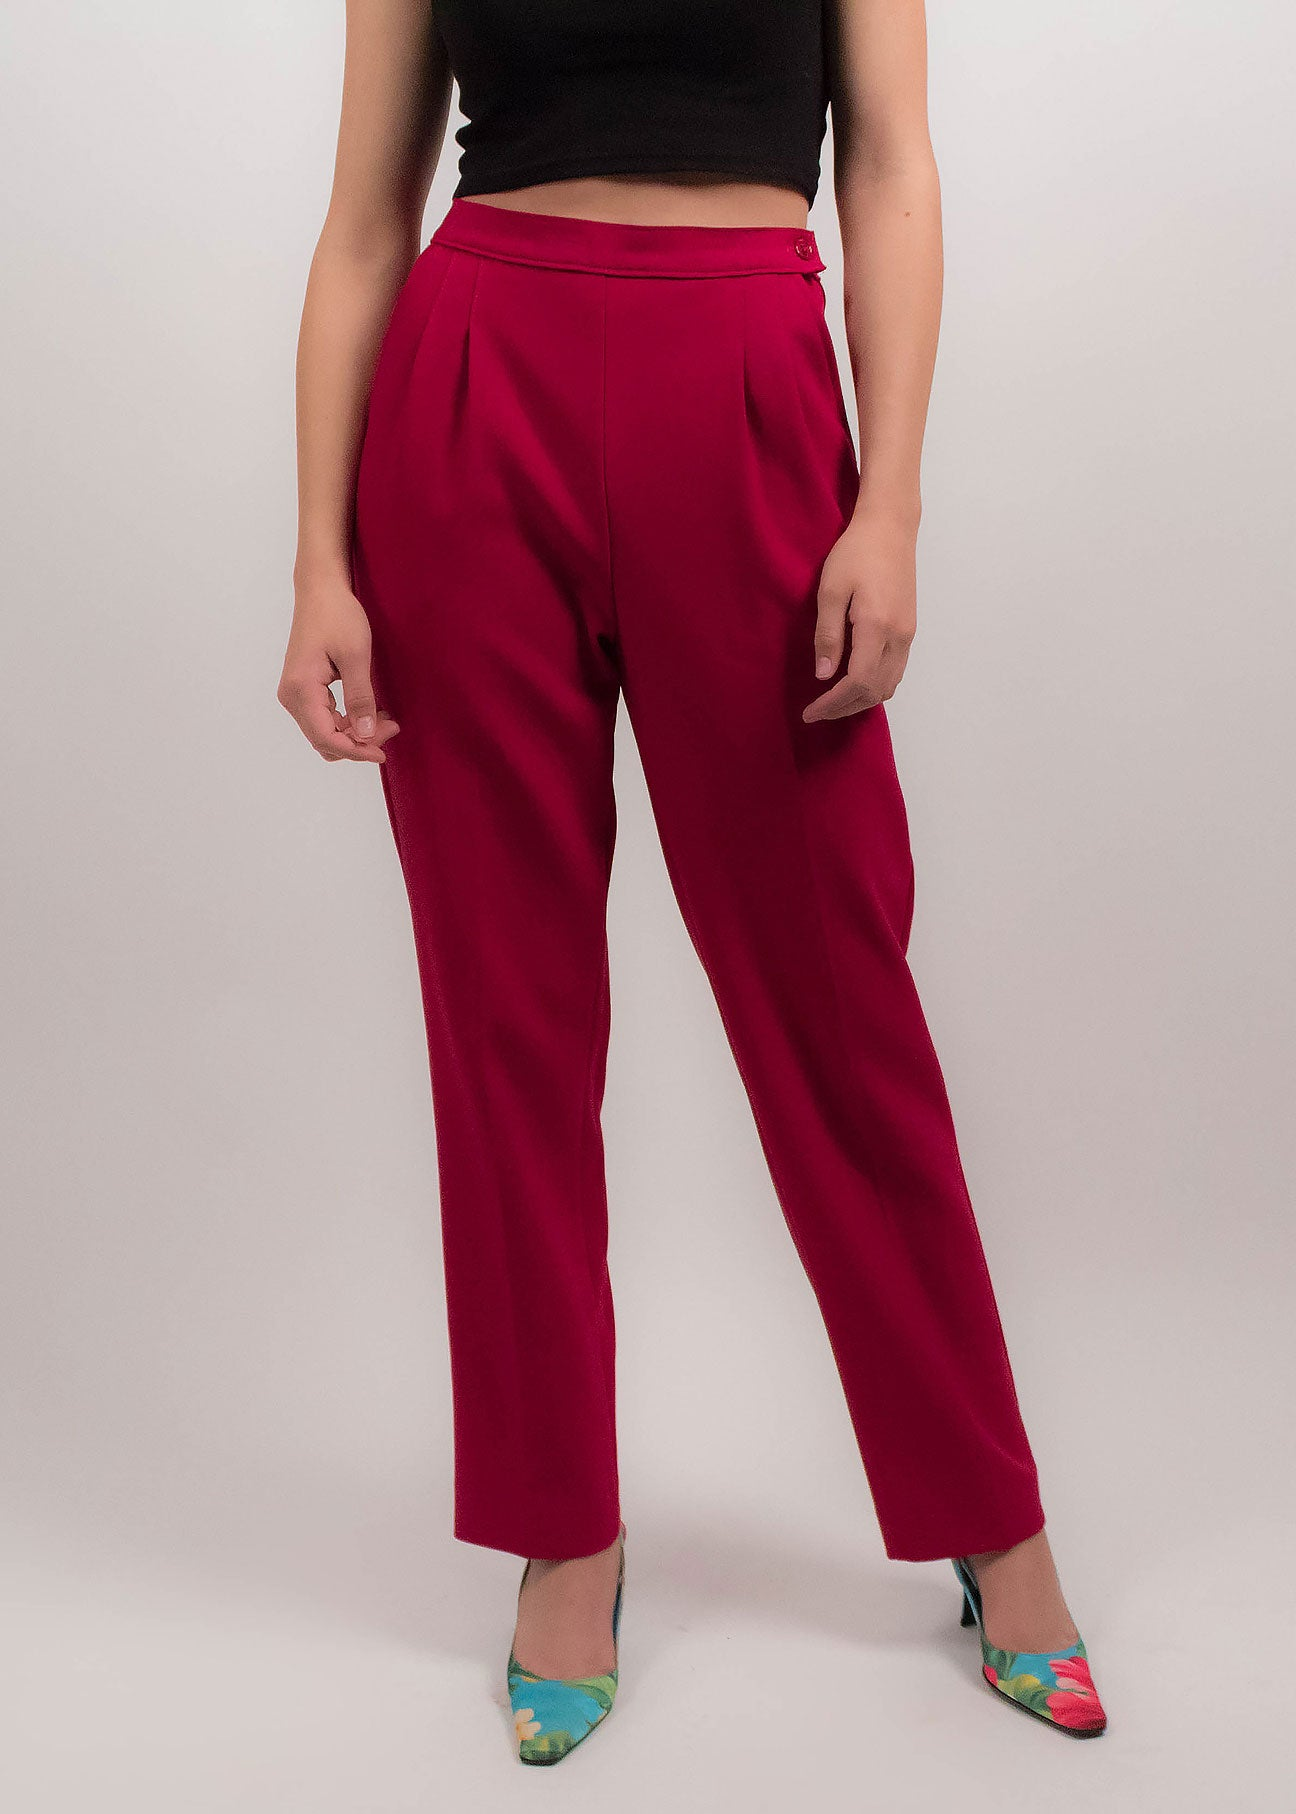 70s High-Waisted Fuchsia Trousers